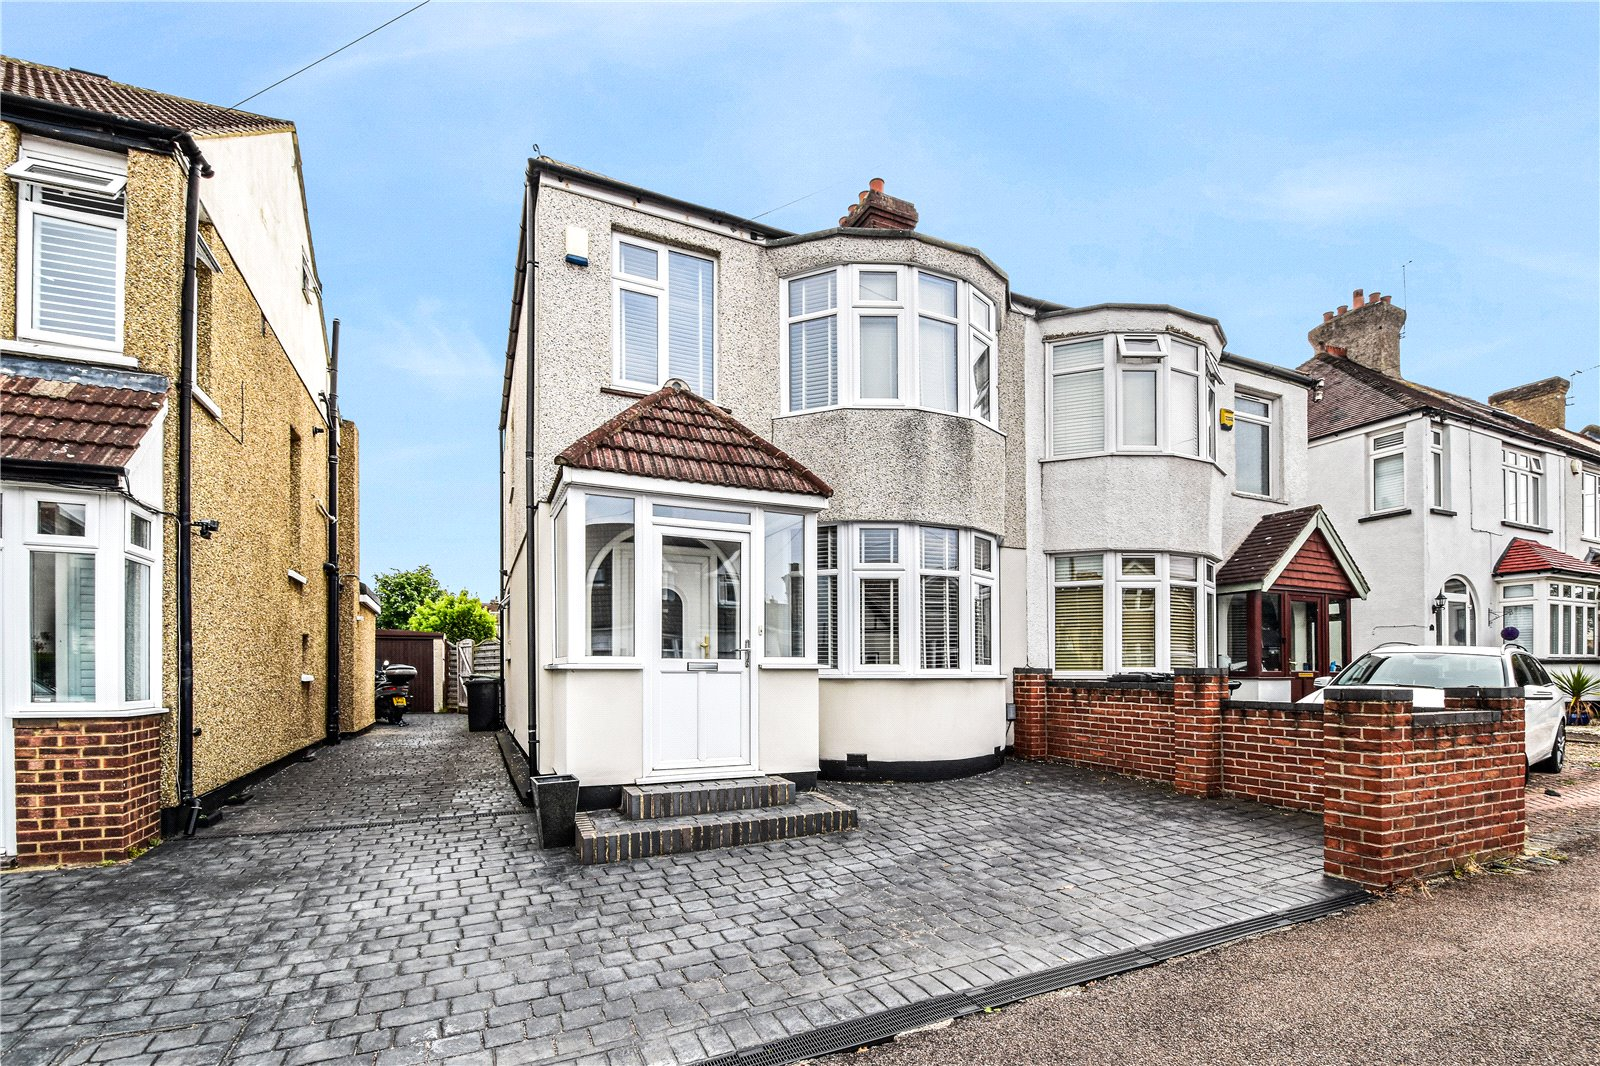 Havelock Road, West Dartford, Kent, DA1